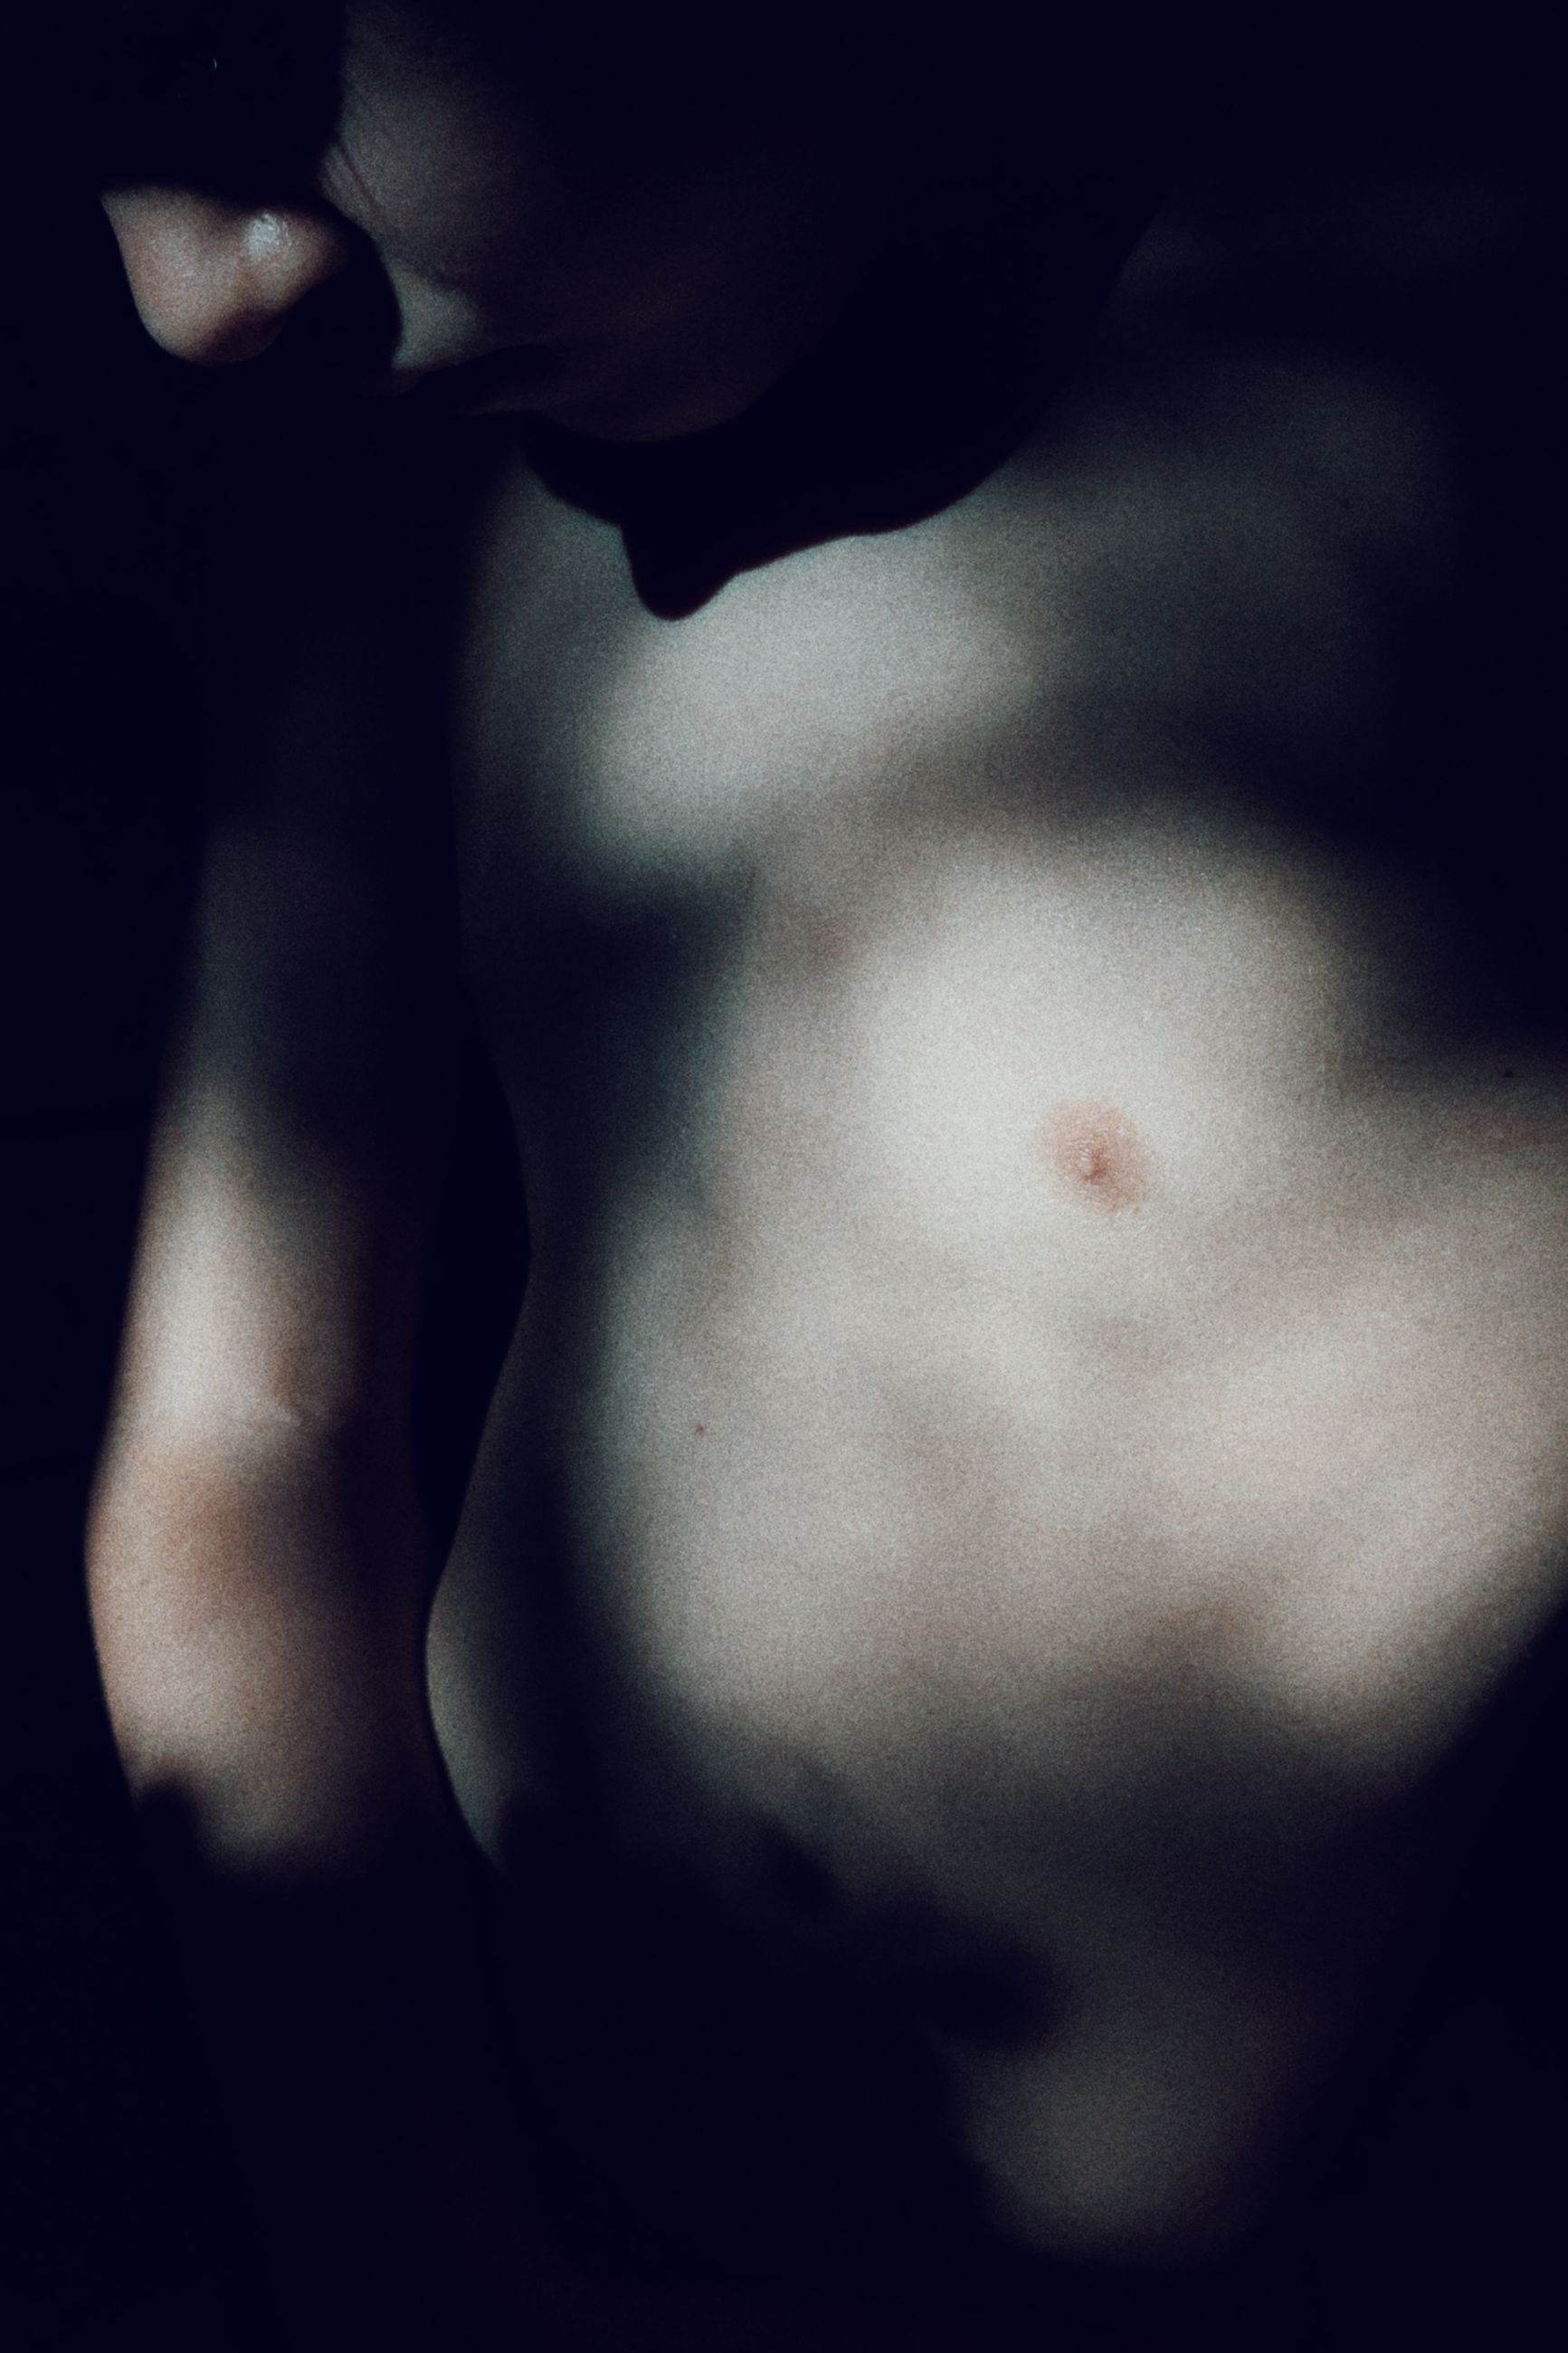 close-up, one person, adult, black and white, darkness, arm, black, muscular build, indoors, studio shot, trunk, nose, back, black background, young adult, hand, human mouth, midsection, men, human head, human face, monochrome photography, portrait, skin, strength, white, monochrome, human skin, front view, dark, human eye, lifestyles